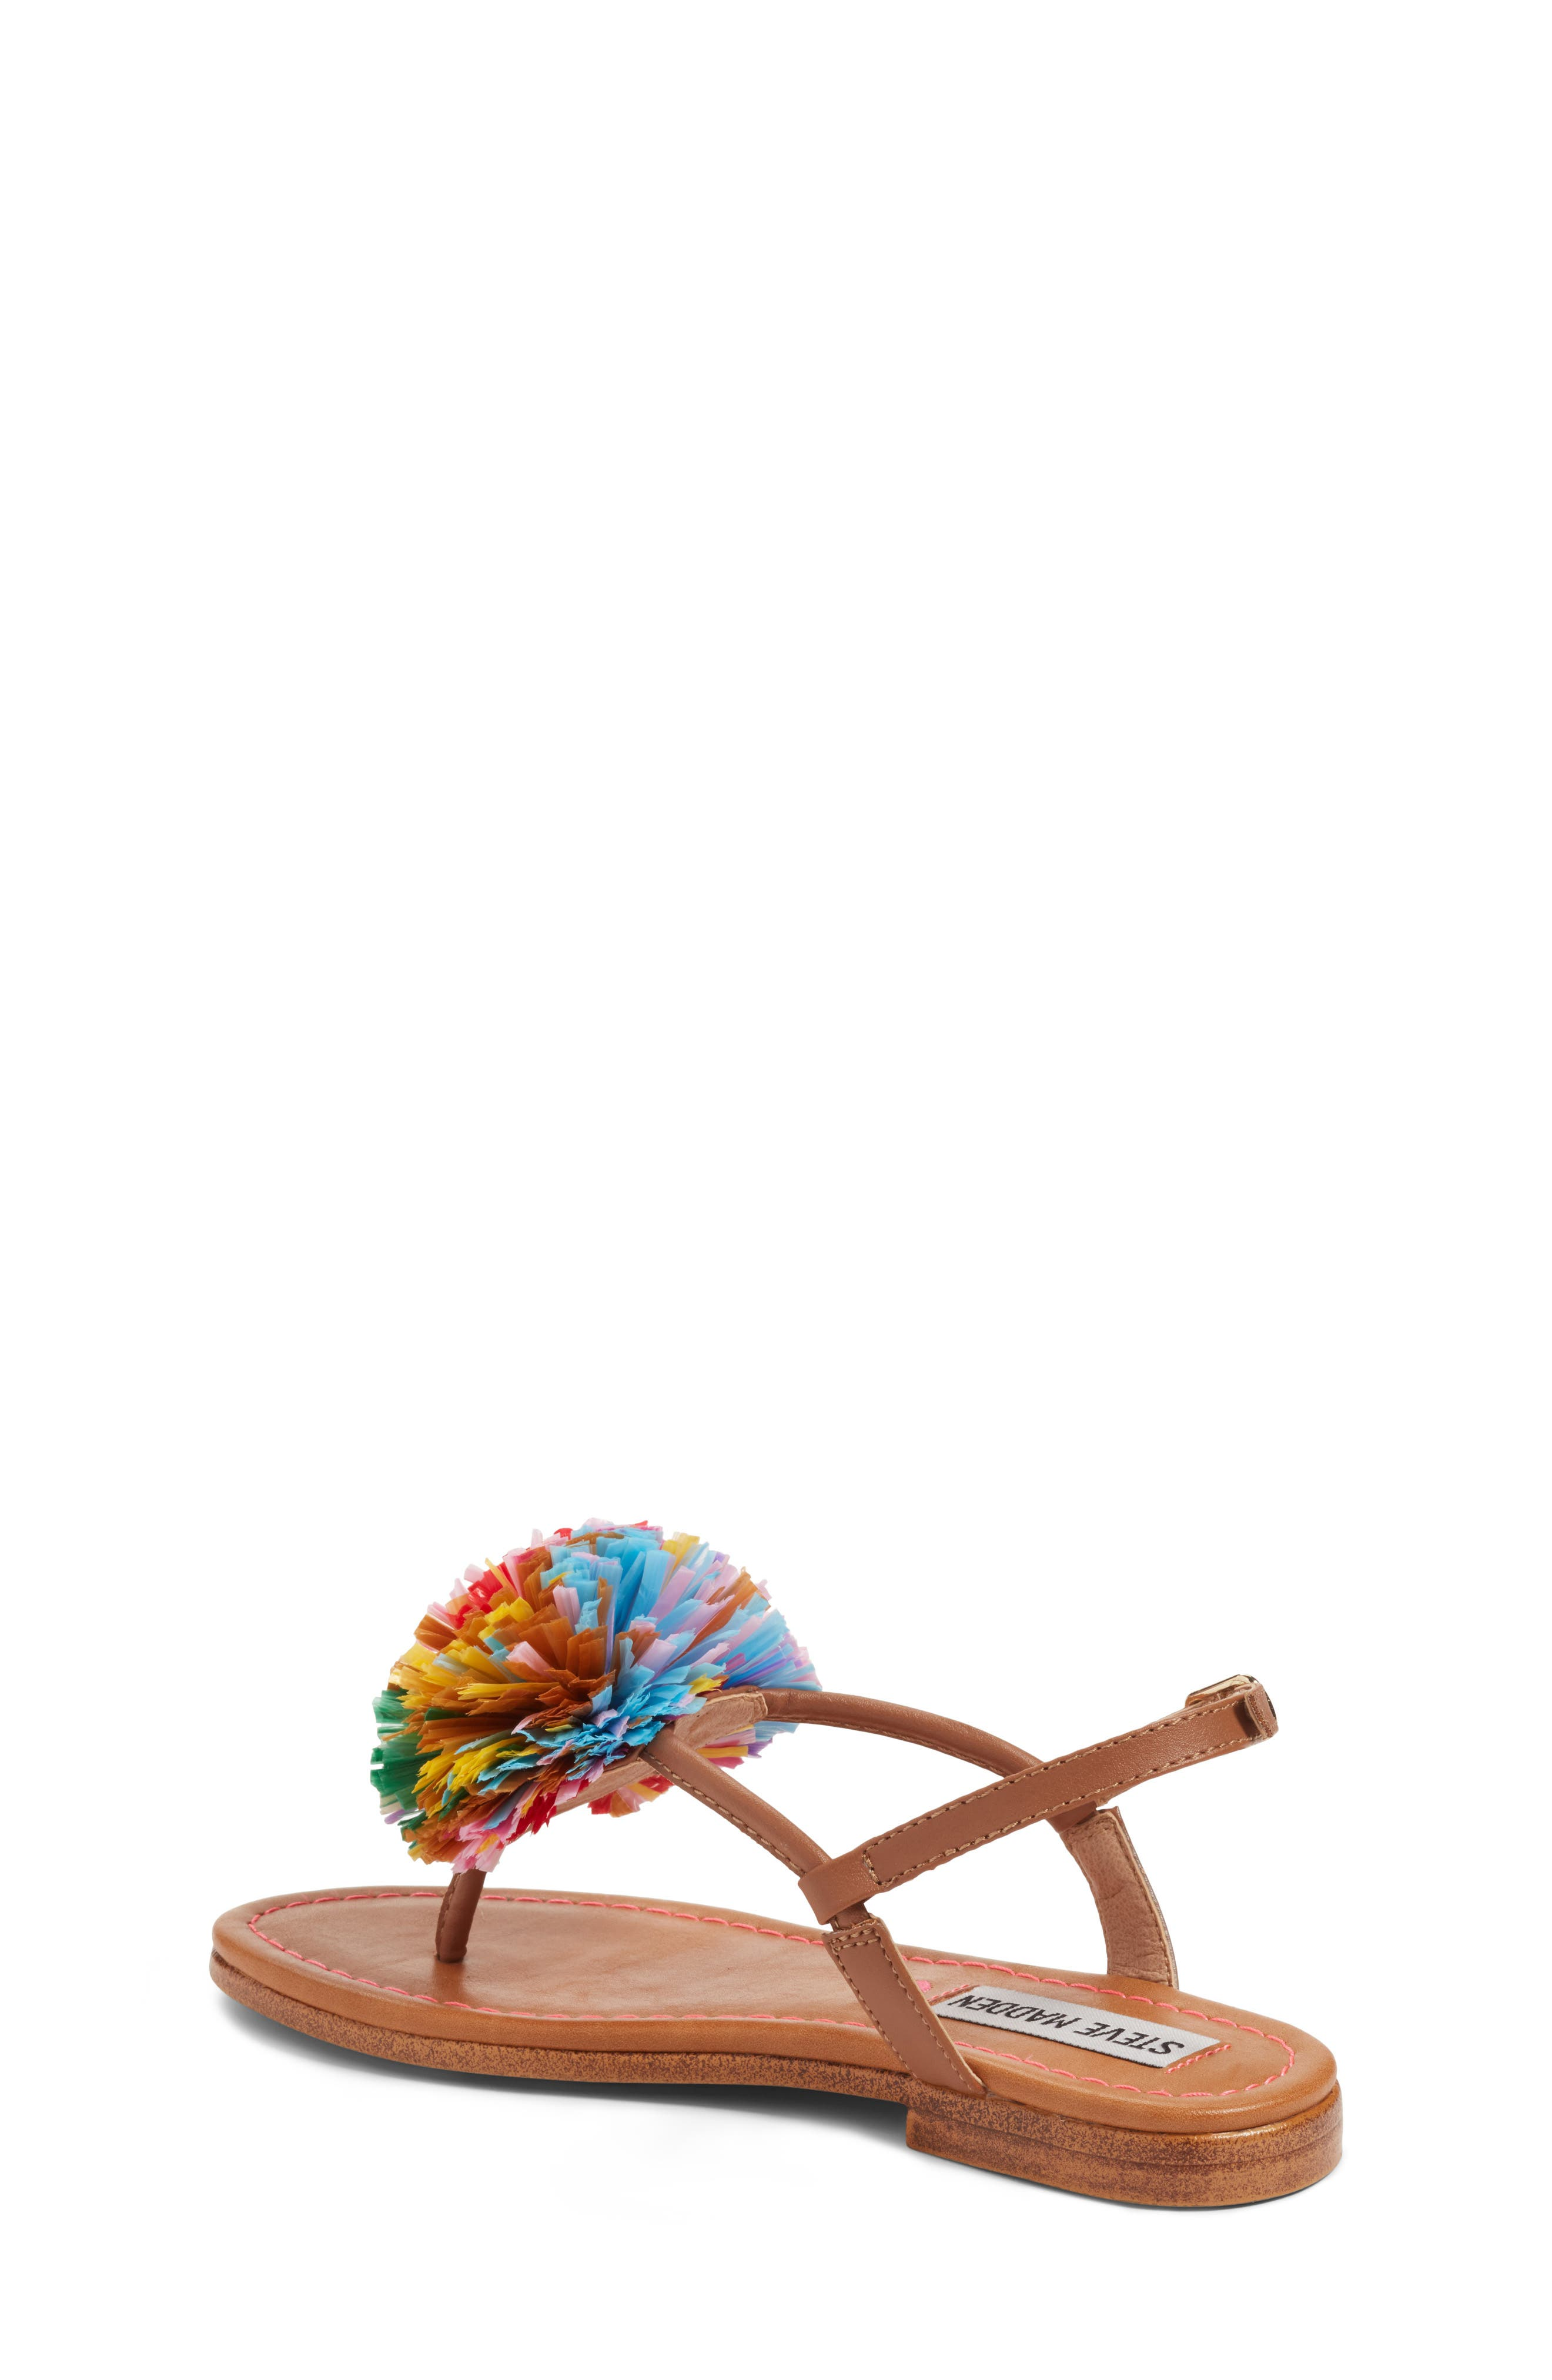 JCherry Pompom Sandal,                             Alternate thumbnail 2, color,